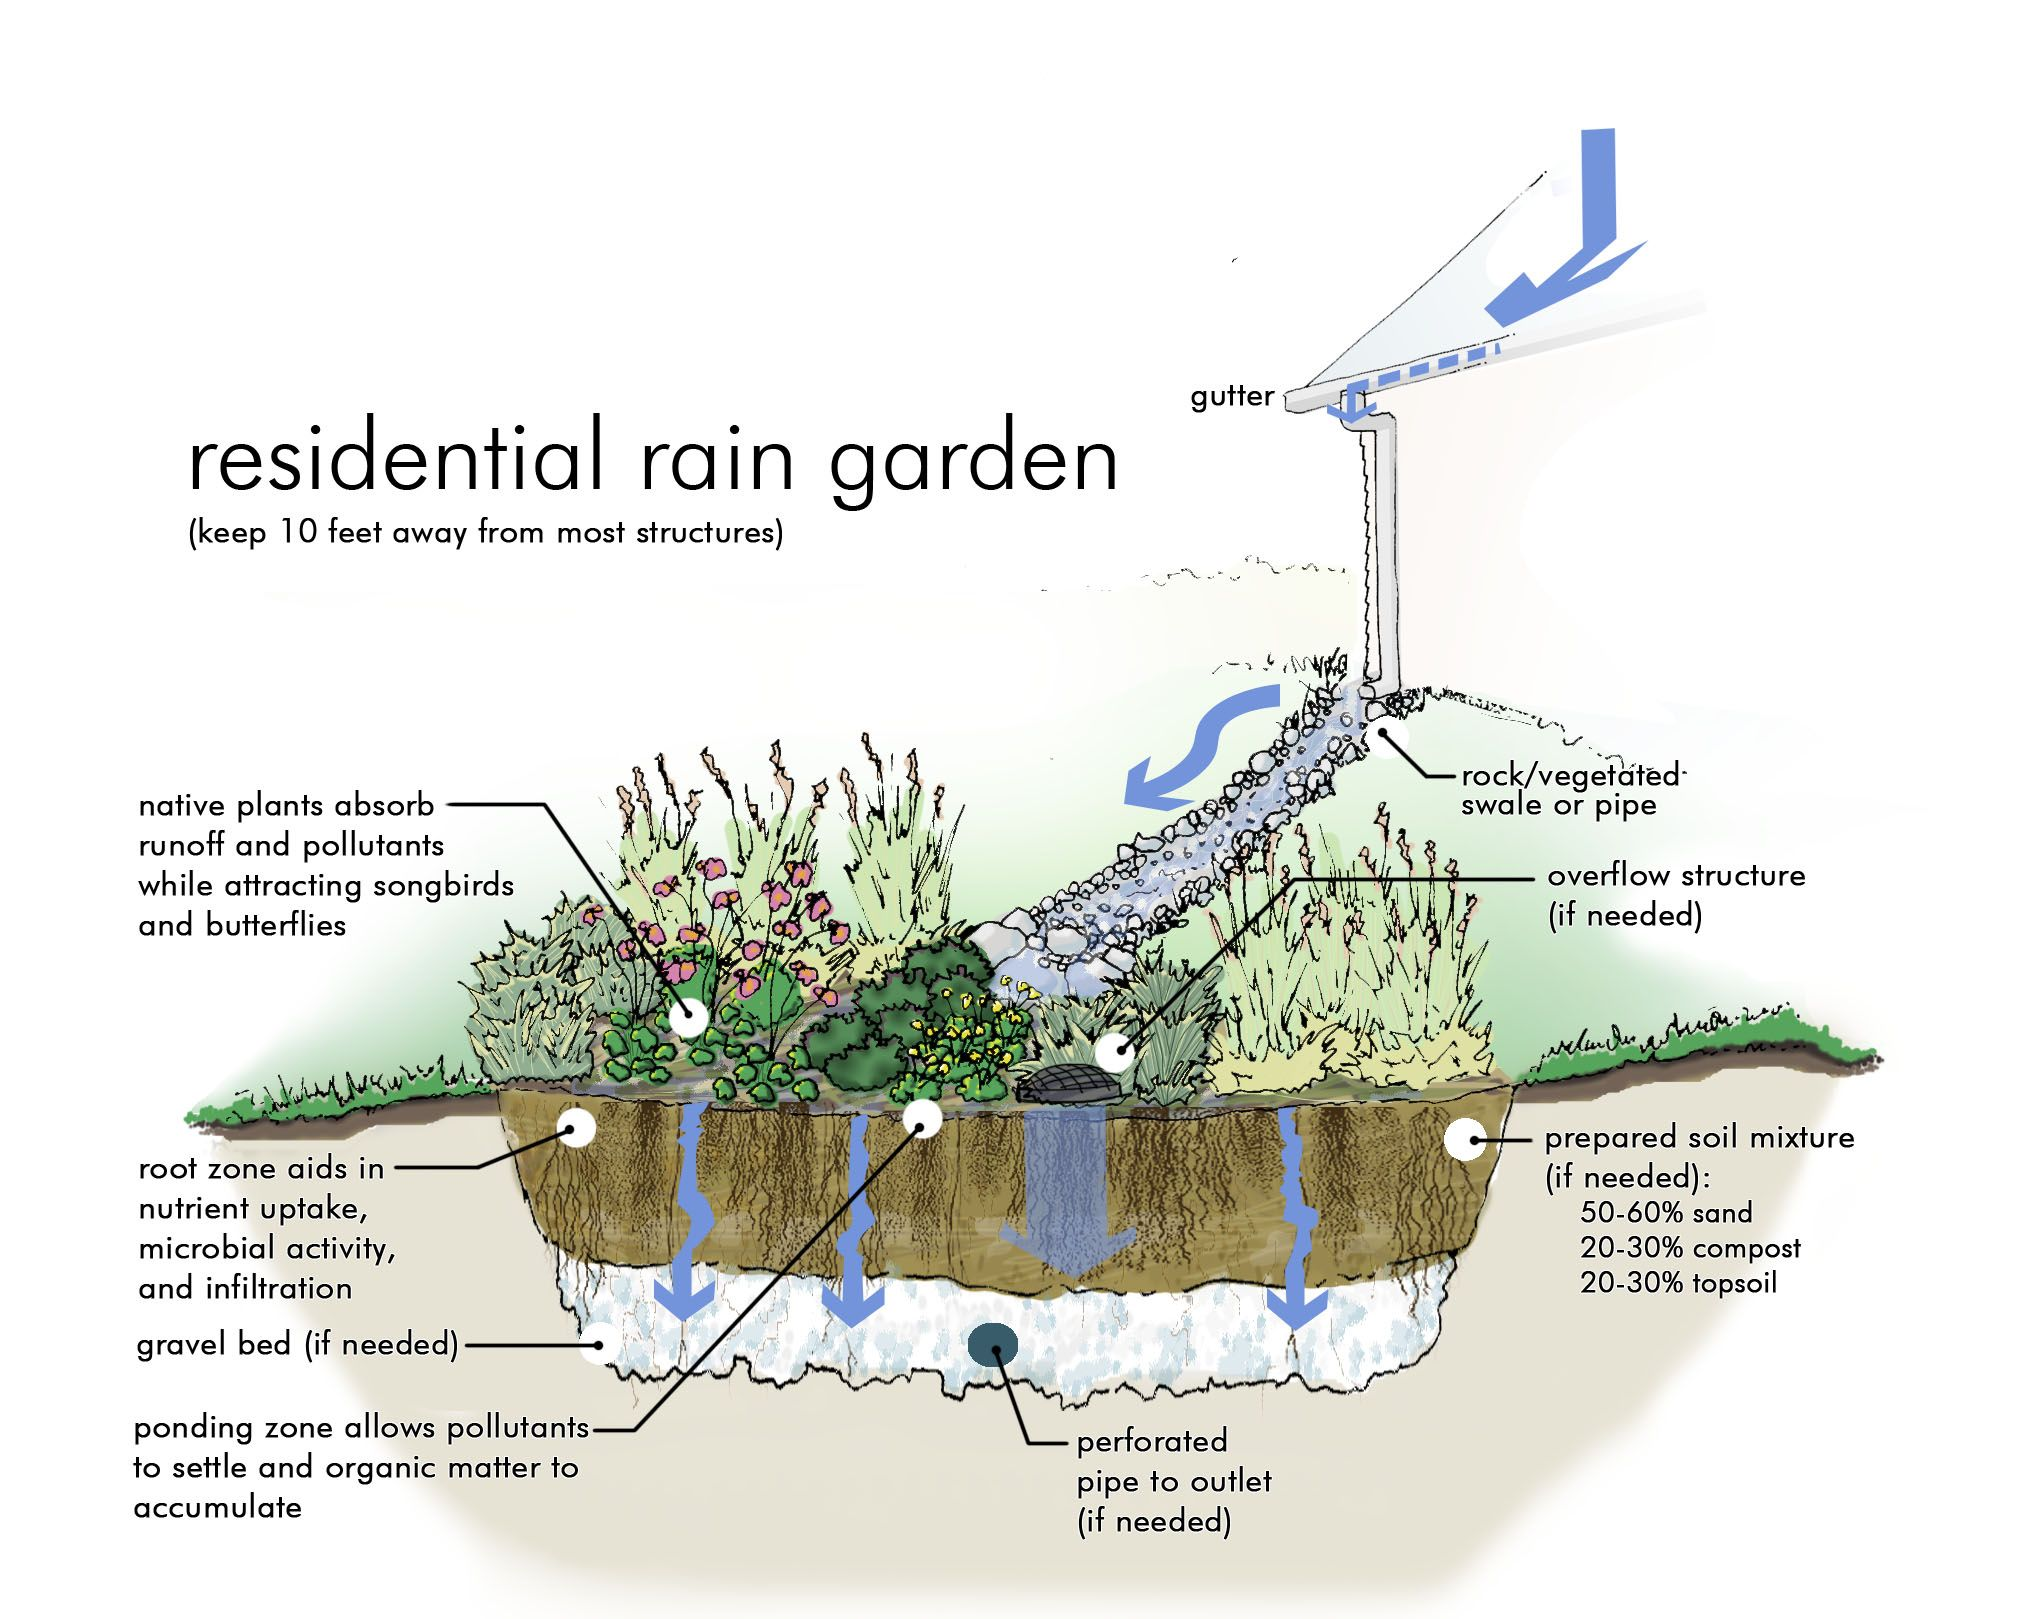 Photos of Rain Gardens Rain Garden Graphic Simulation from